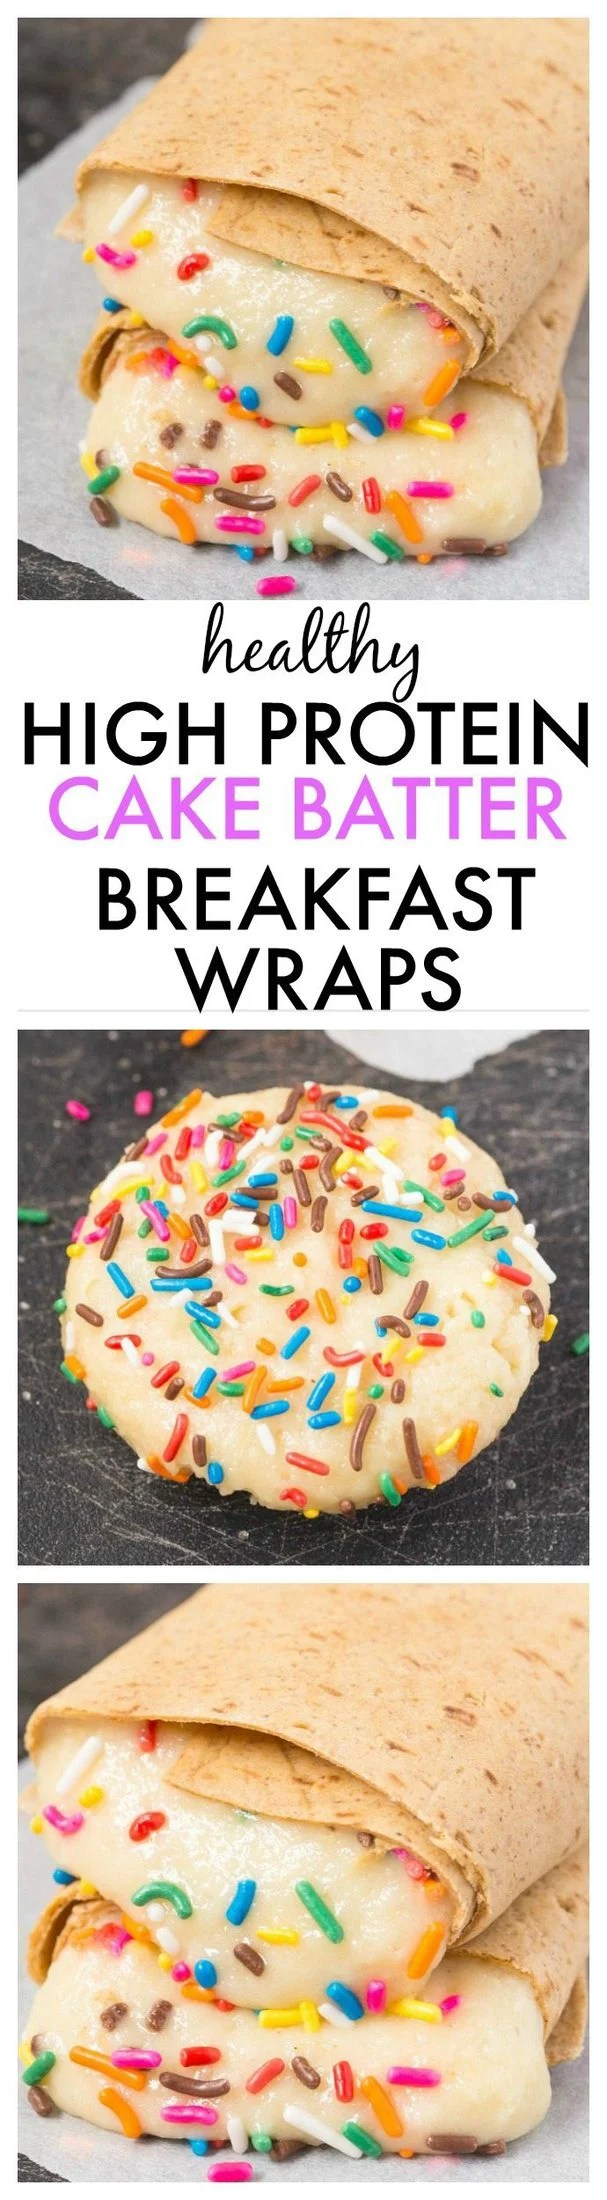 Healthy High Protein Cake Batter Breakfast Wraps which are low calorie, quick, easy and the filling is paleo, vegan, gluten free and refined sugar free! - thebigmansworld.com